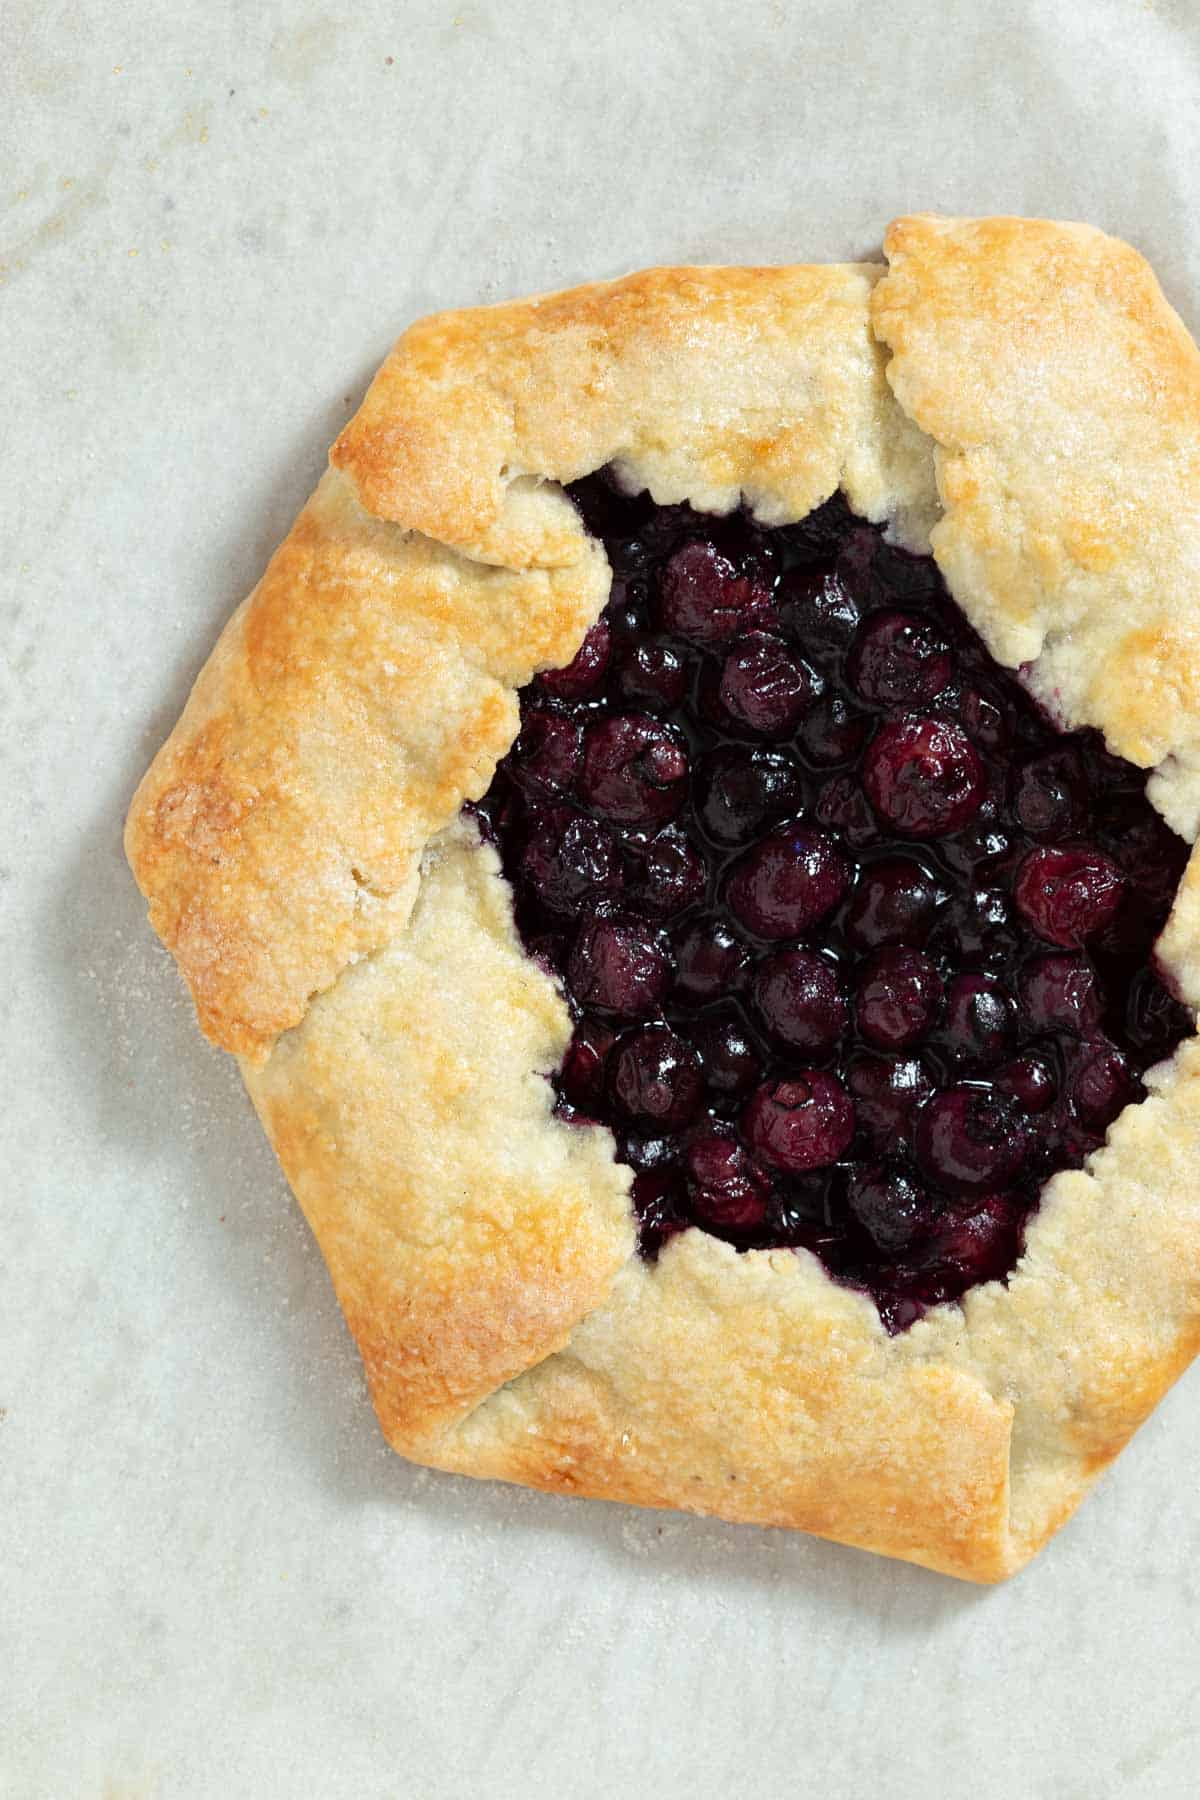 Close-up of baked blueberry galette